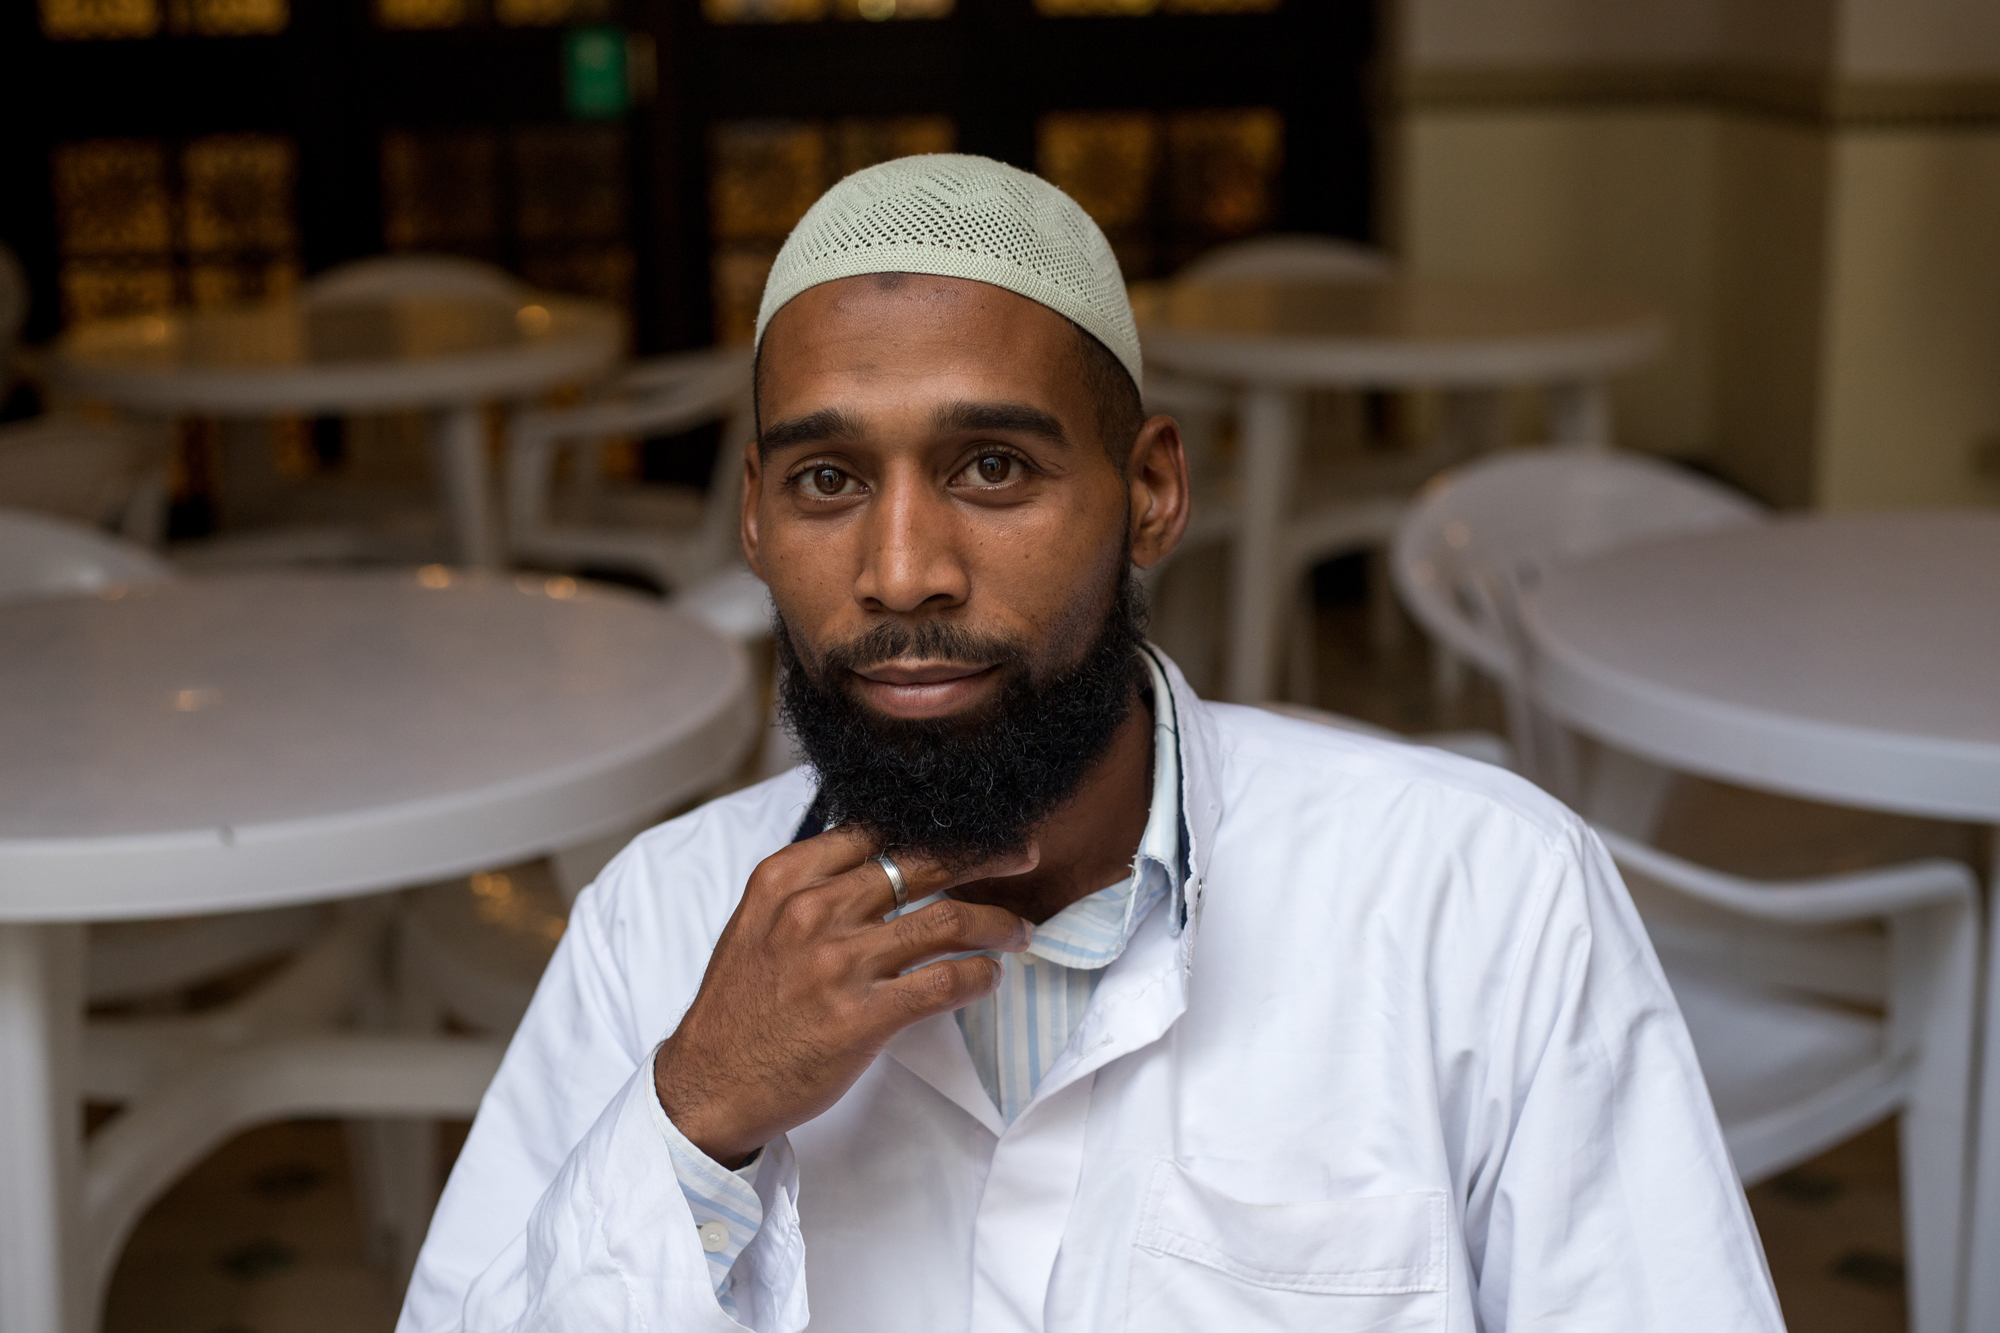 Yusuf Ali, 26, has been a practicing Muslim for two years. While working as a demolitionist, he said he's been confronted by misconceptions about his religion, with one person asking him if he's a terrorist.